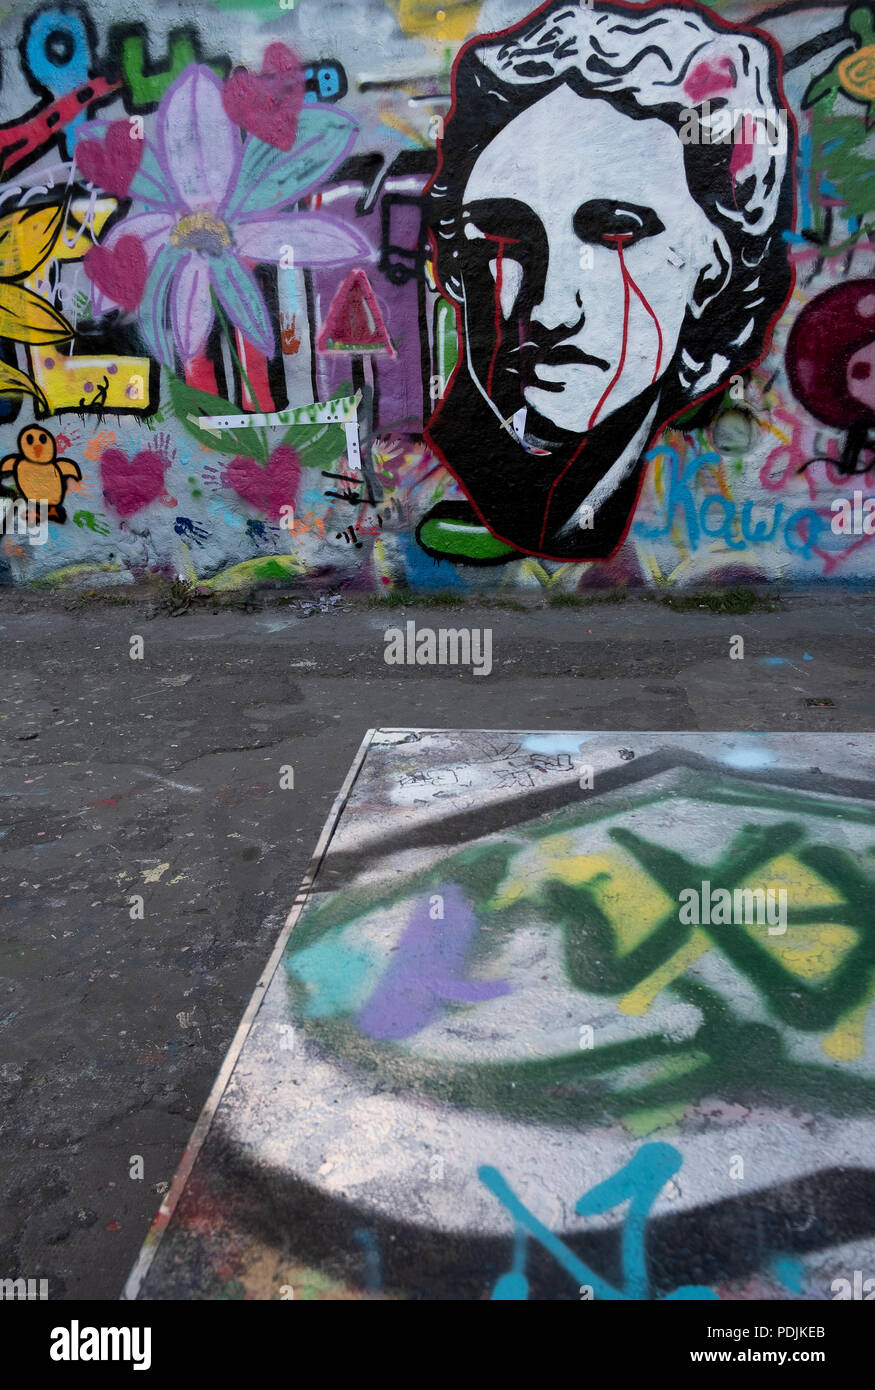 Graffiti in a Cologne outdoor space, Germany - Stock Image